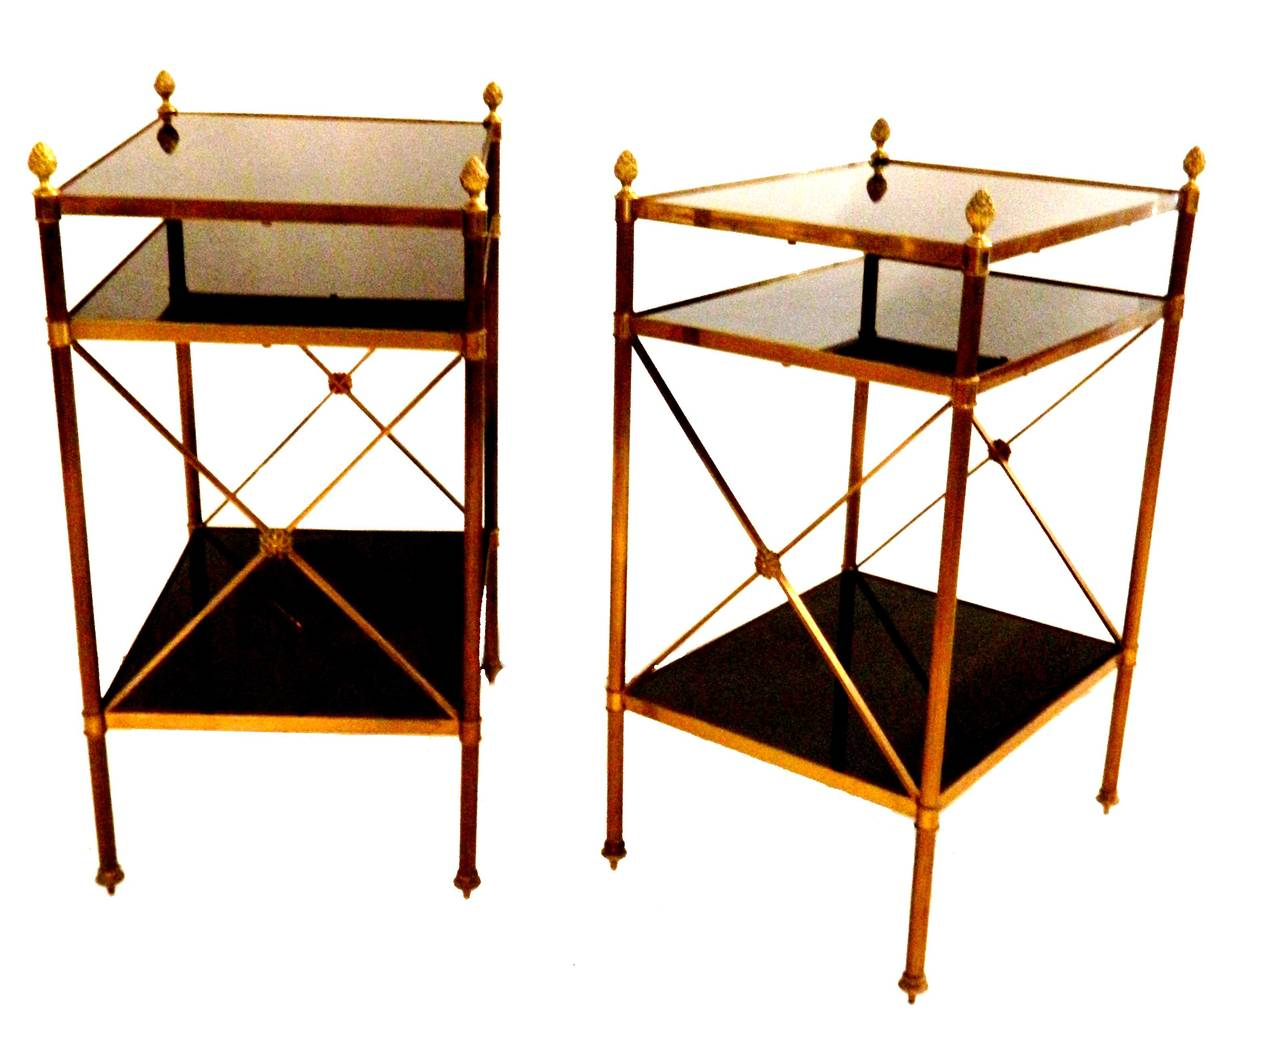 Pair Of Maison Jansen Side Tables, France At 1stdibs